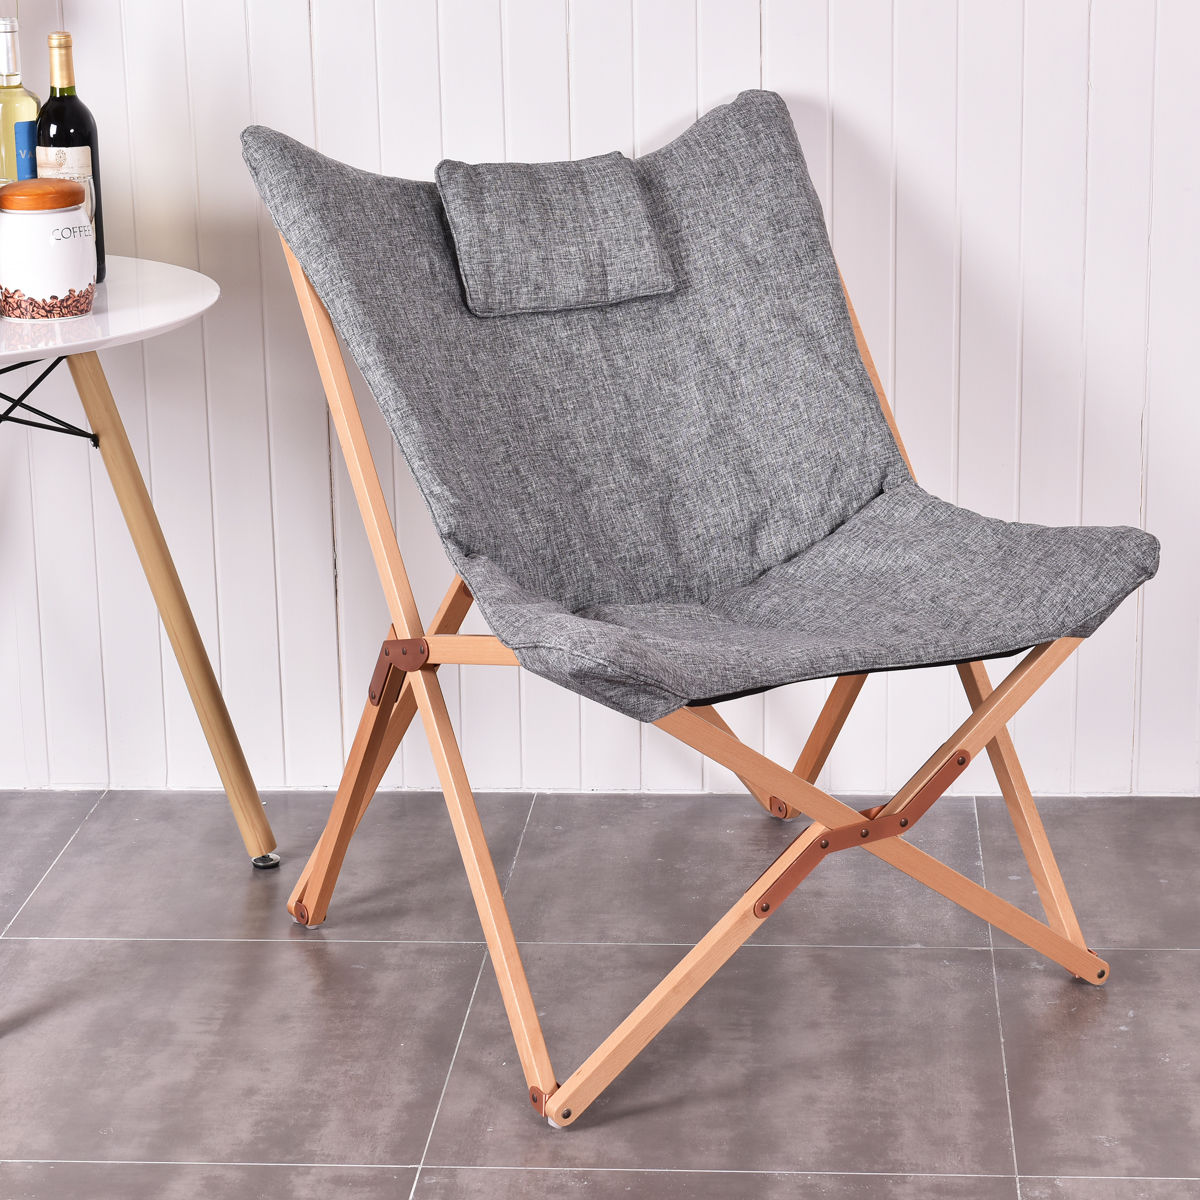 Giantex Home Outdoor Folding Butterfly Chair Seat Wood Frame